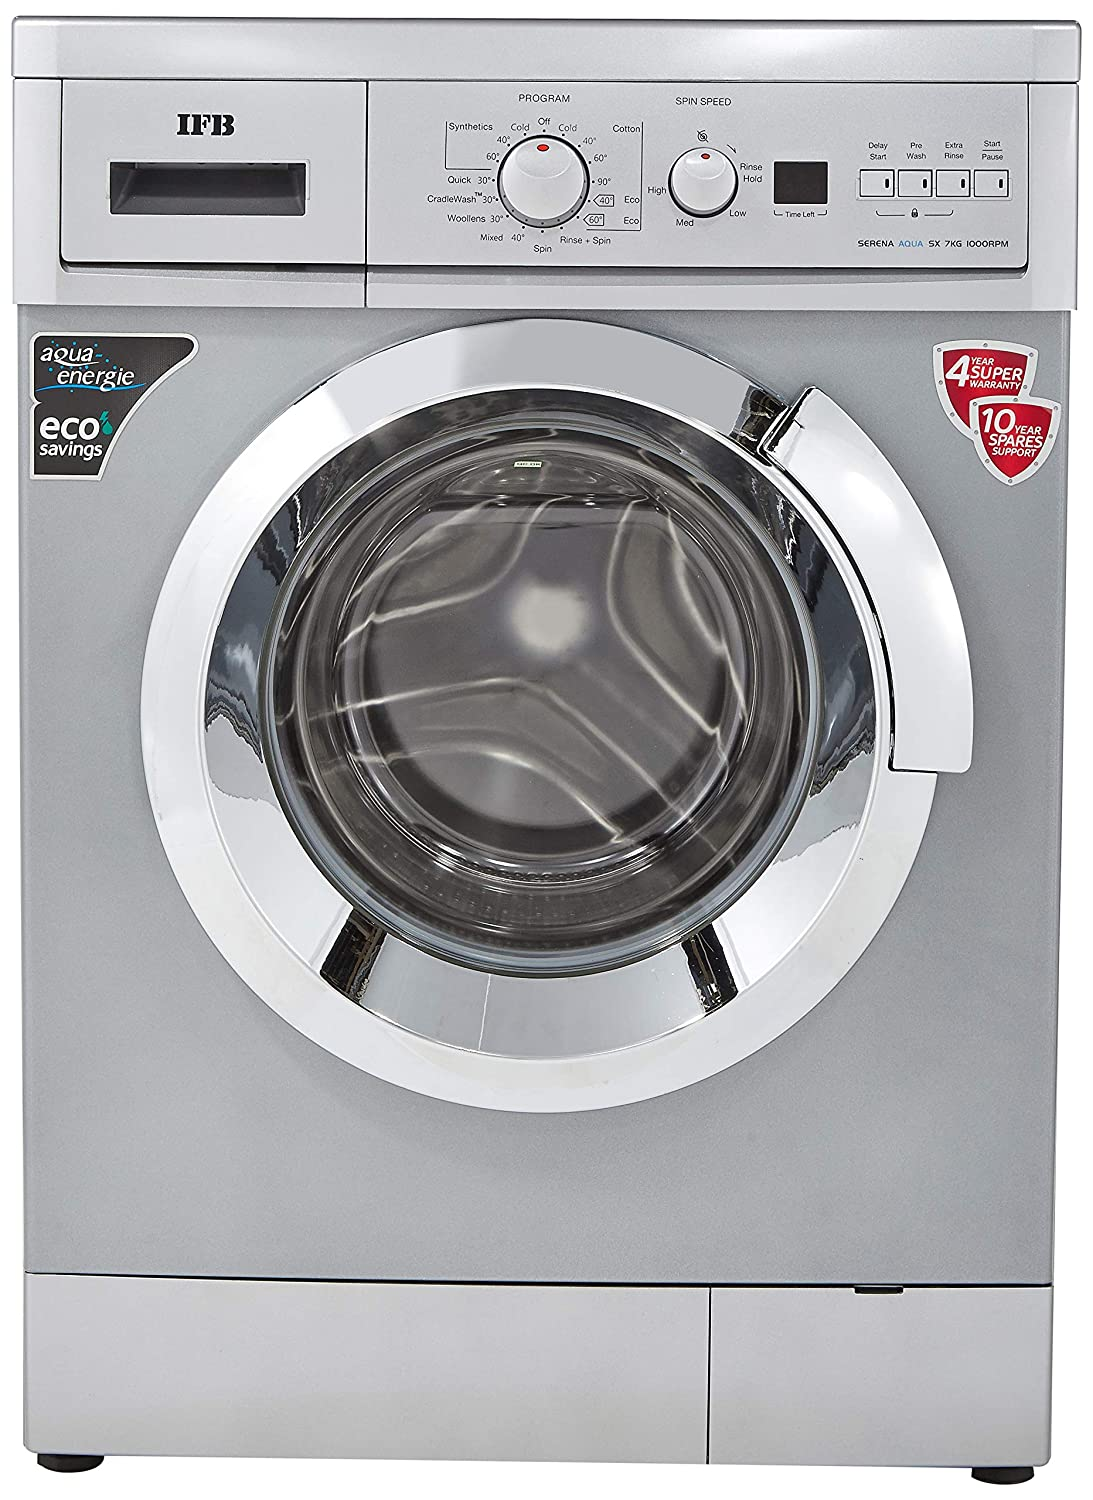 Ifb Serena Aqua Sx Fully Automatic Front Loading Washing Machine 7 Wiring Diagram Of Kg White Home Kitchen